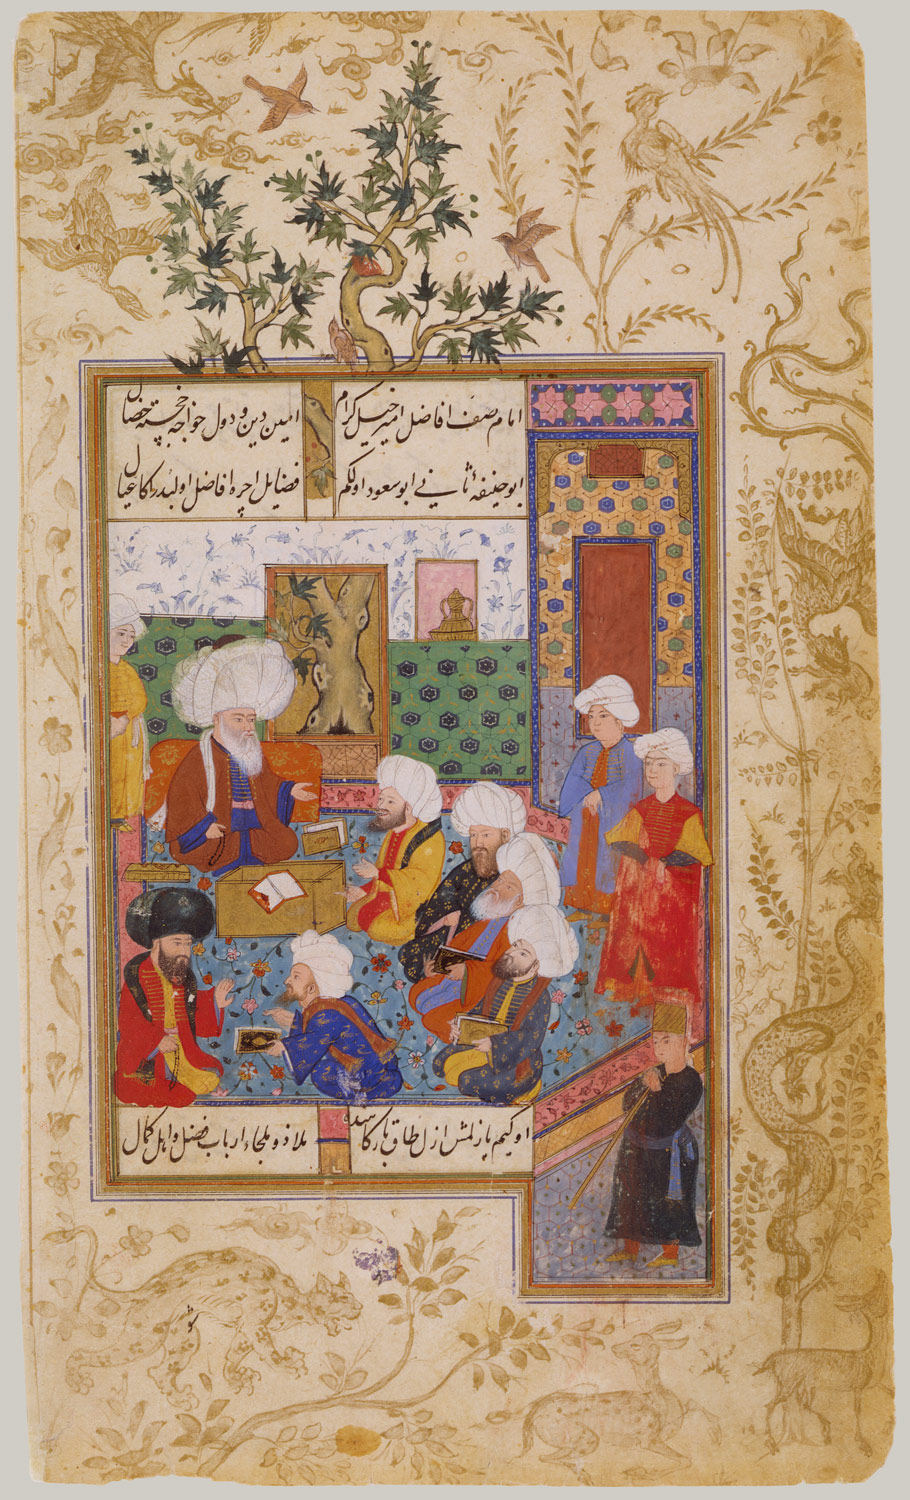 the art of the ott s before 1600 essay heilbrunn timeline 1520 66 acircmiddot the great abu saud teaching law folio from the divan of mahmud abd al